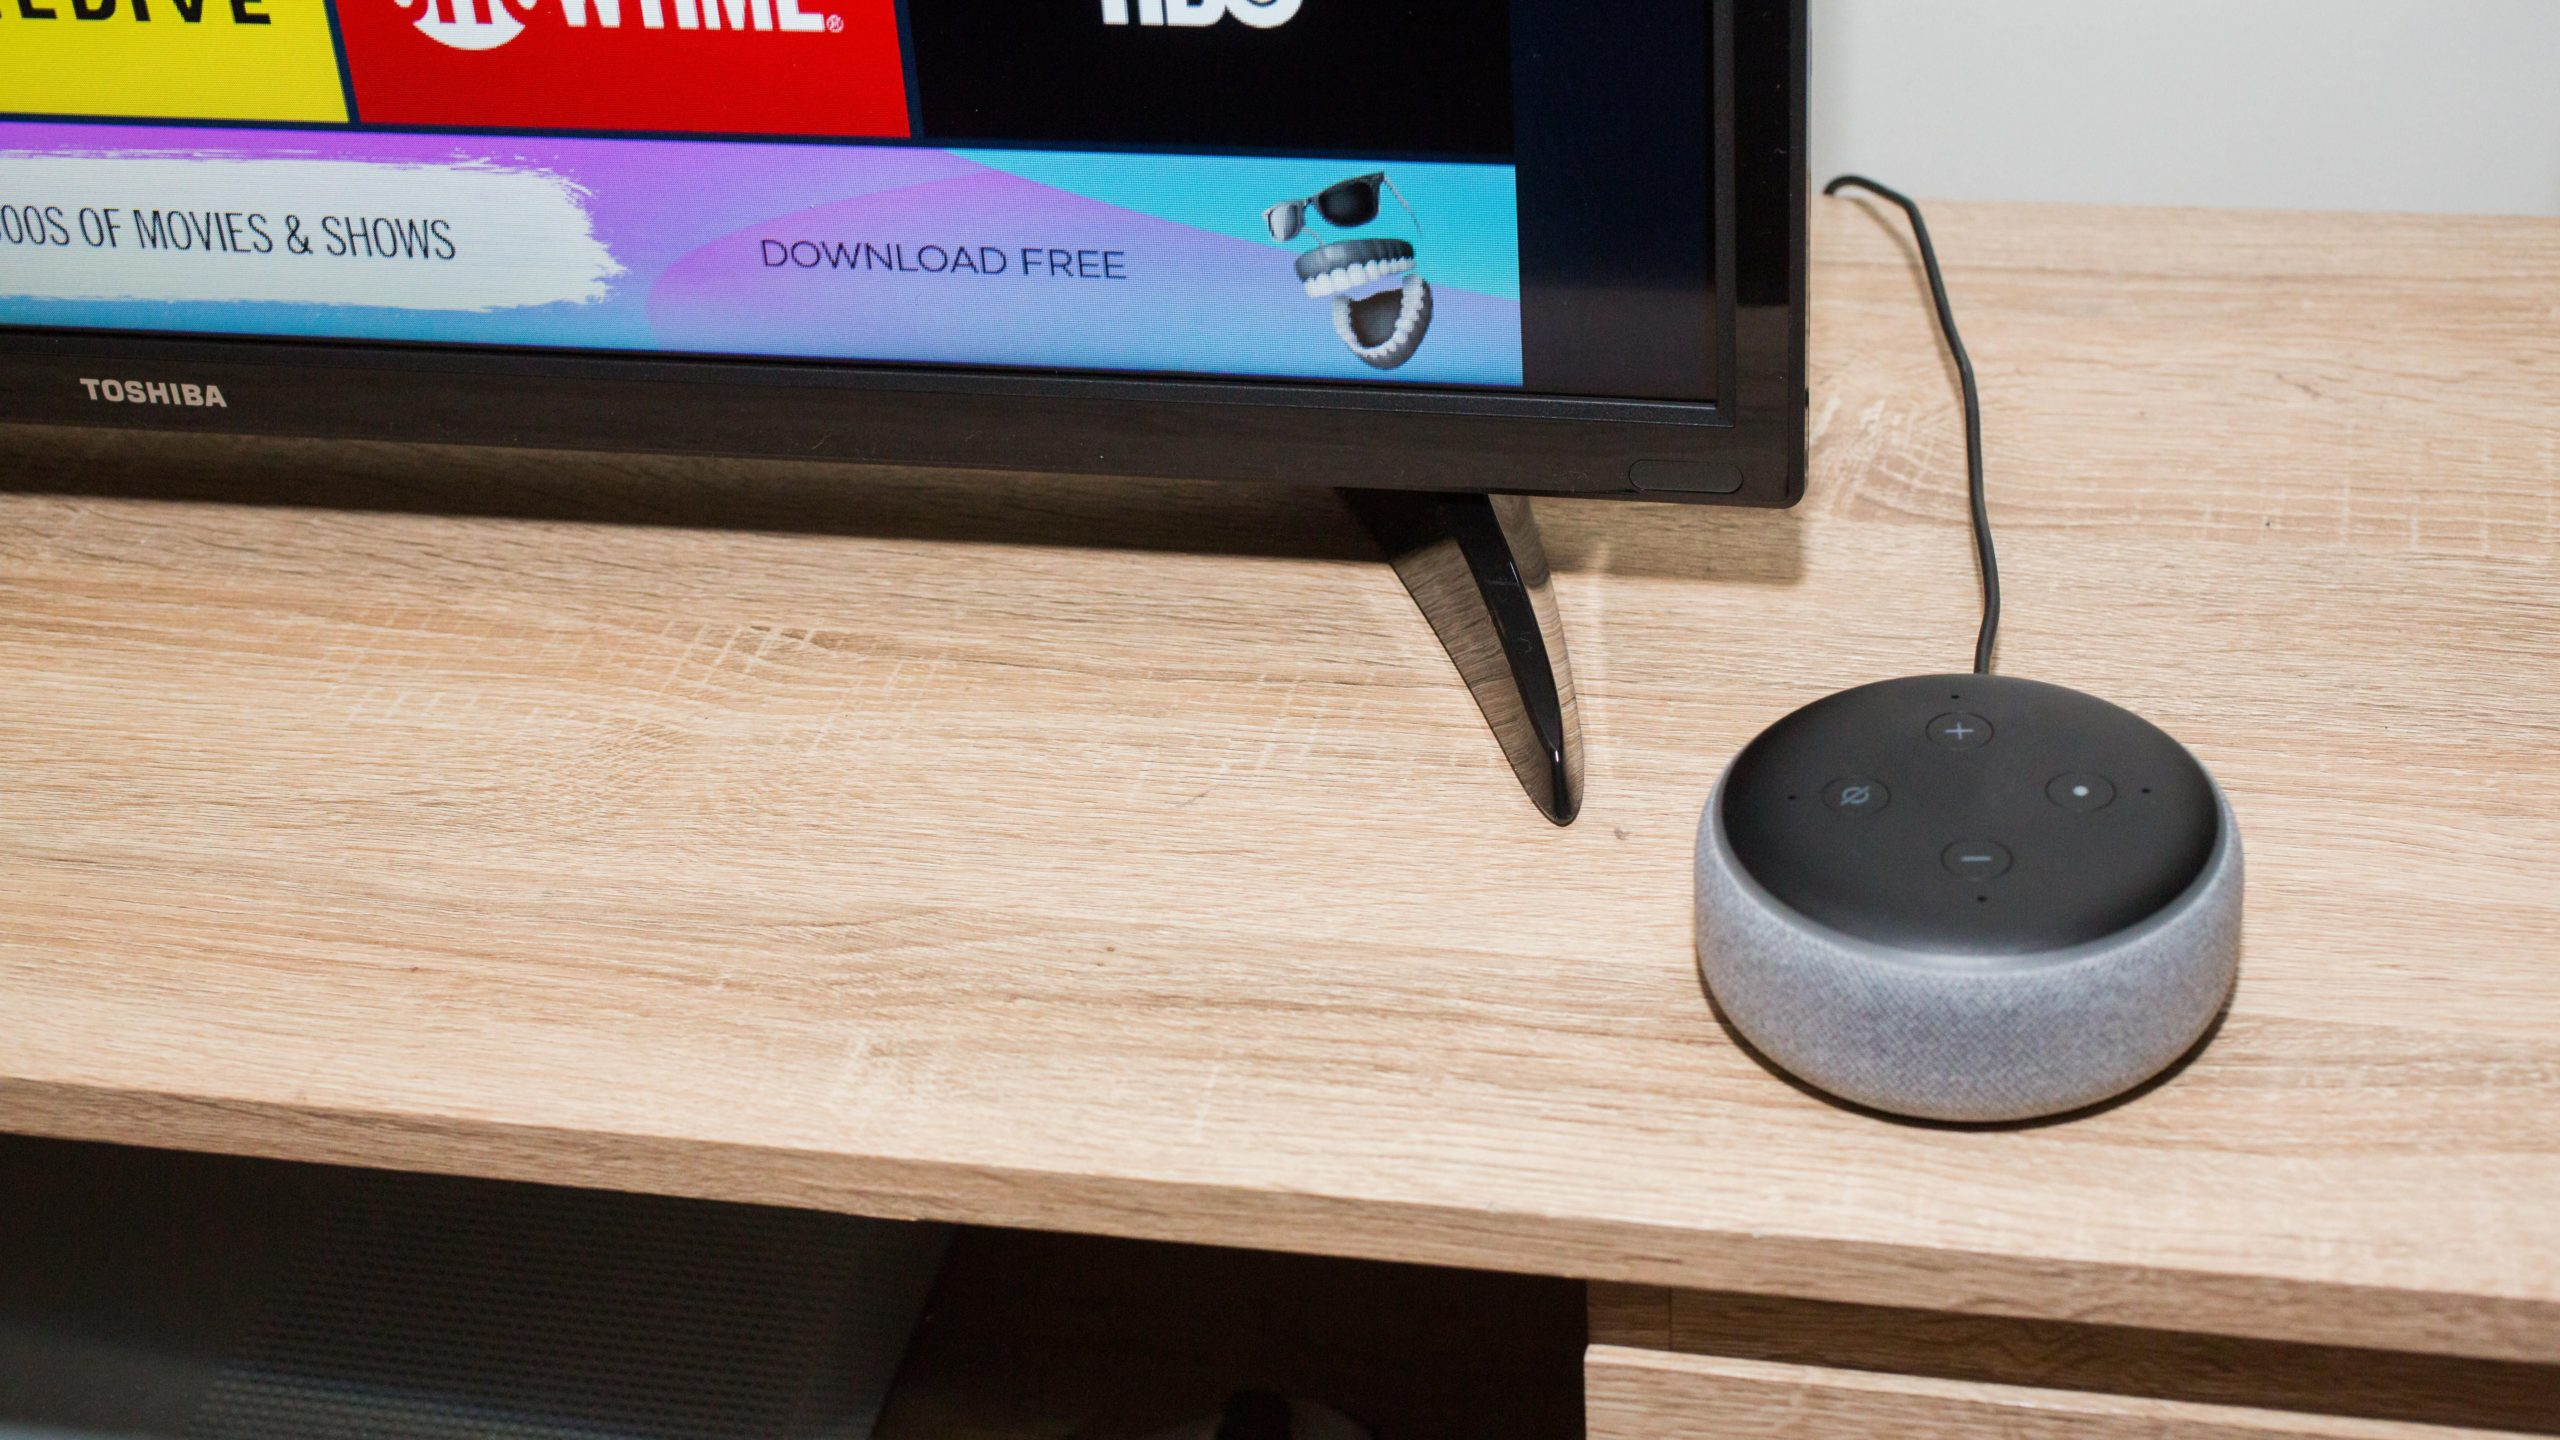 Turn your Fire TV into a larger Amazon Echo Show. Here's how